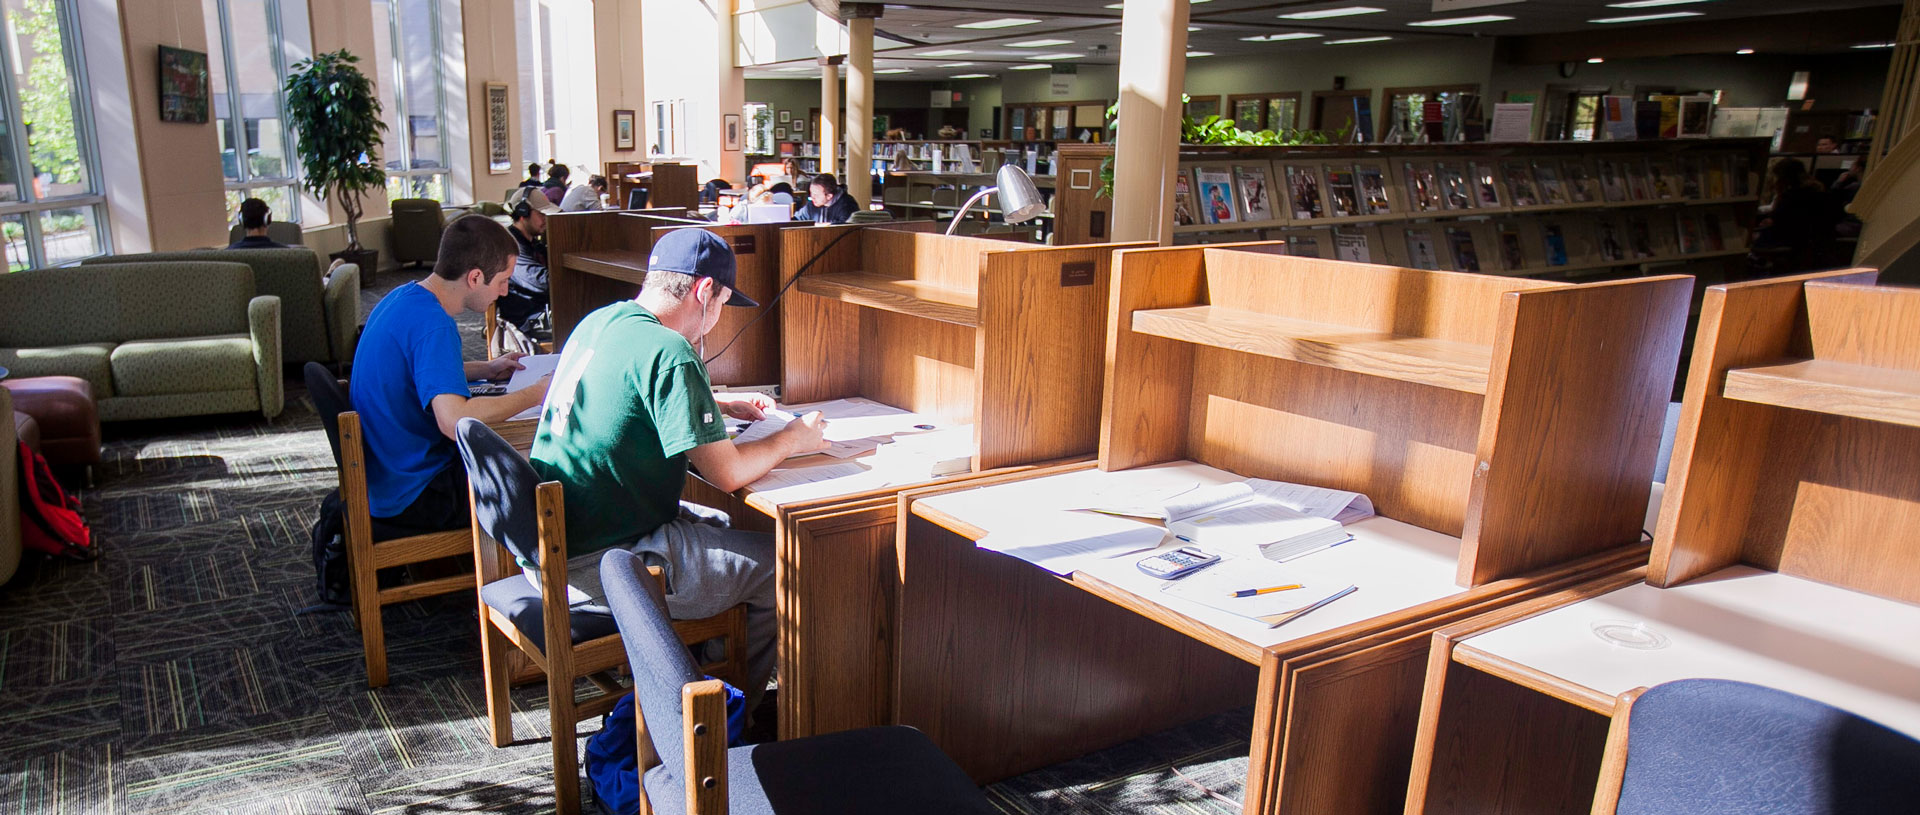 Undergrad students studying in the Library.